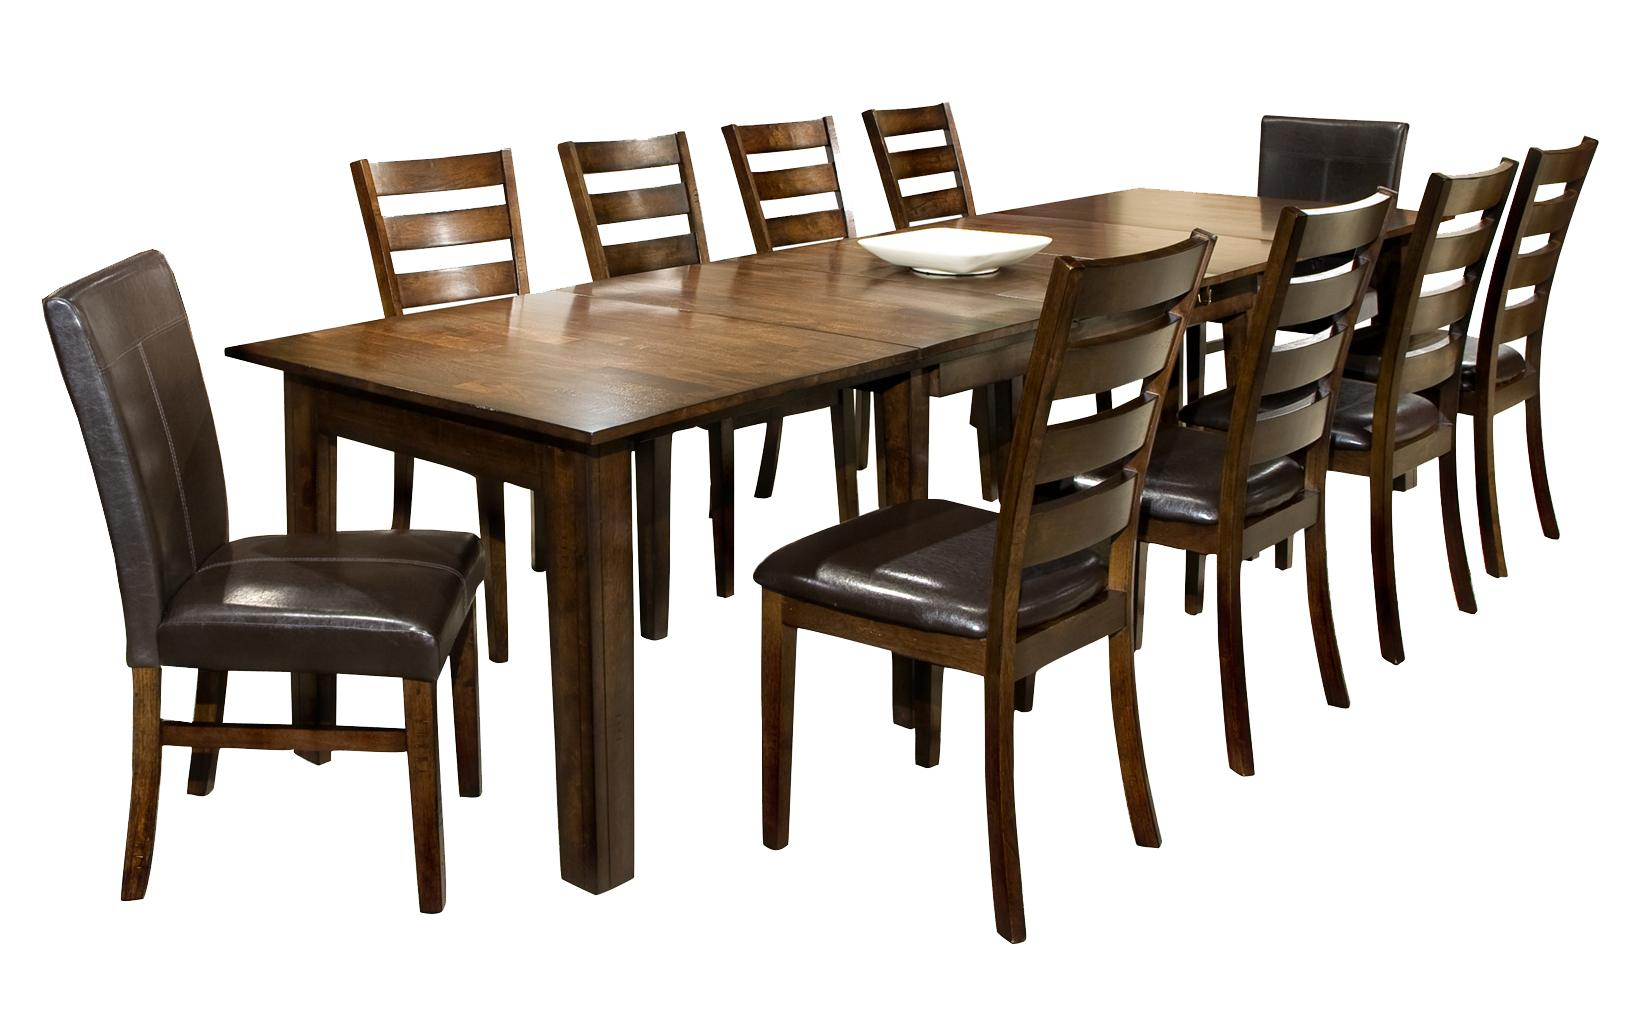 Dining Table With Three 22 Inch Leaves By Intercon Wolf And Gardiner Wolf Furniture